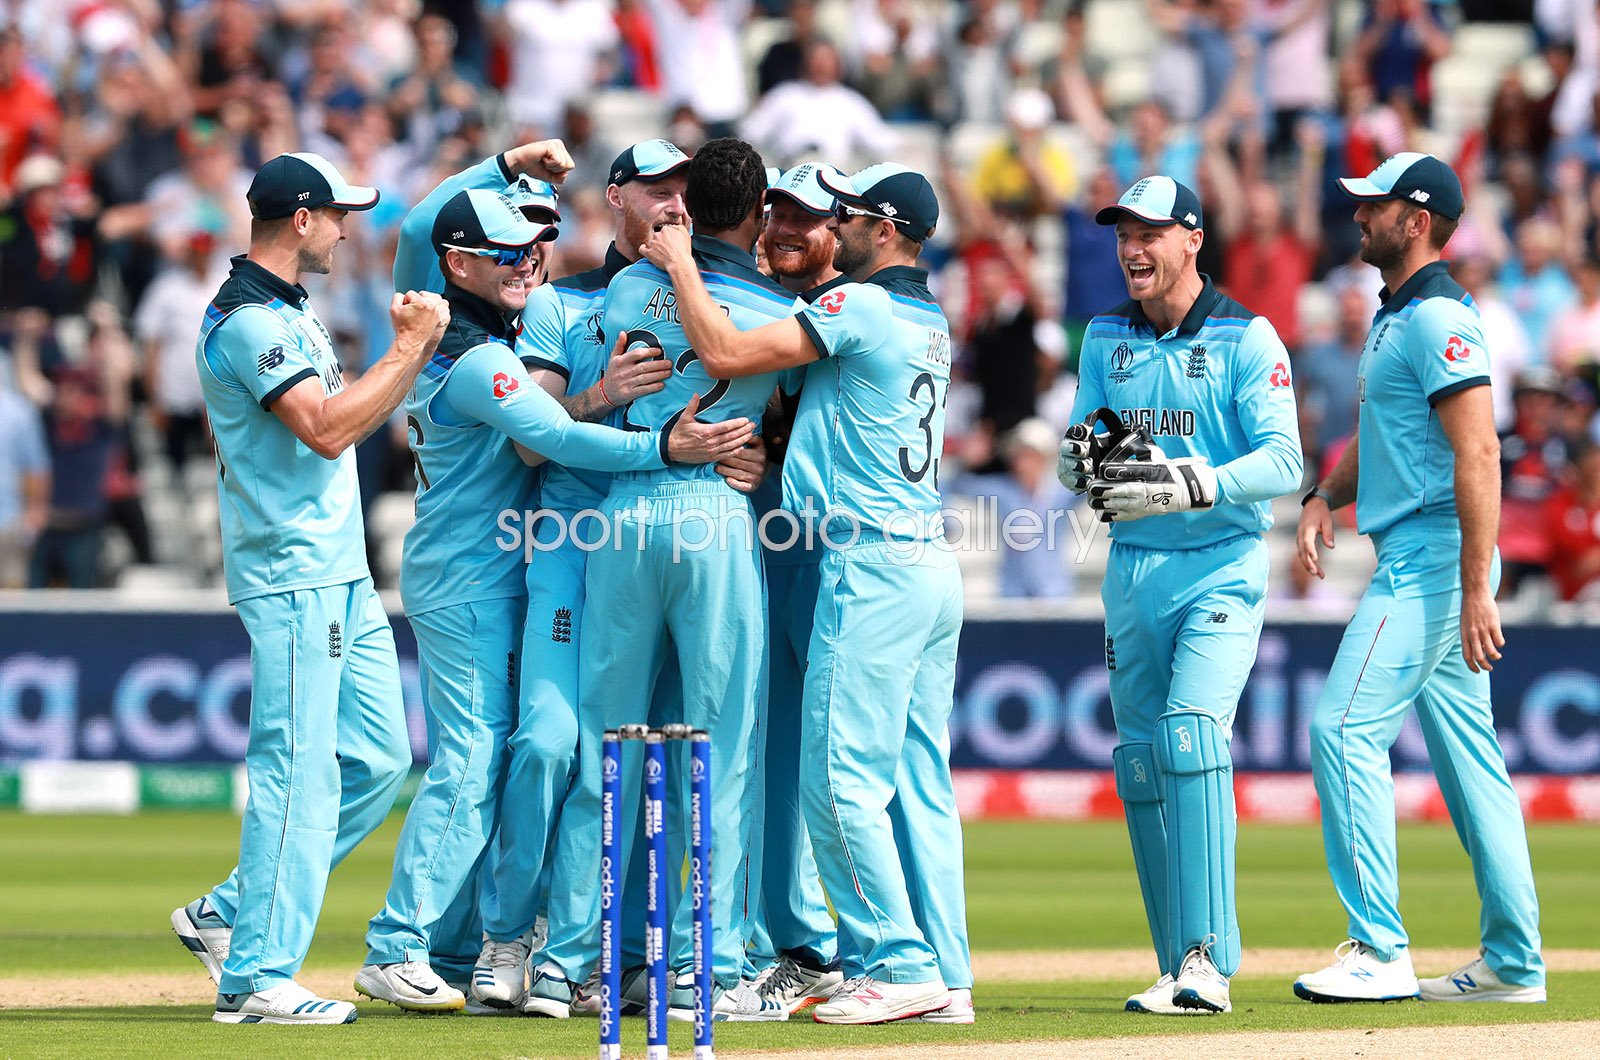 Jofra Archer & England team celebrate v Australia Semi-Final 2019